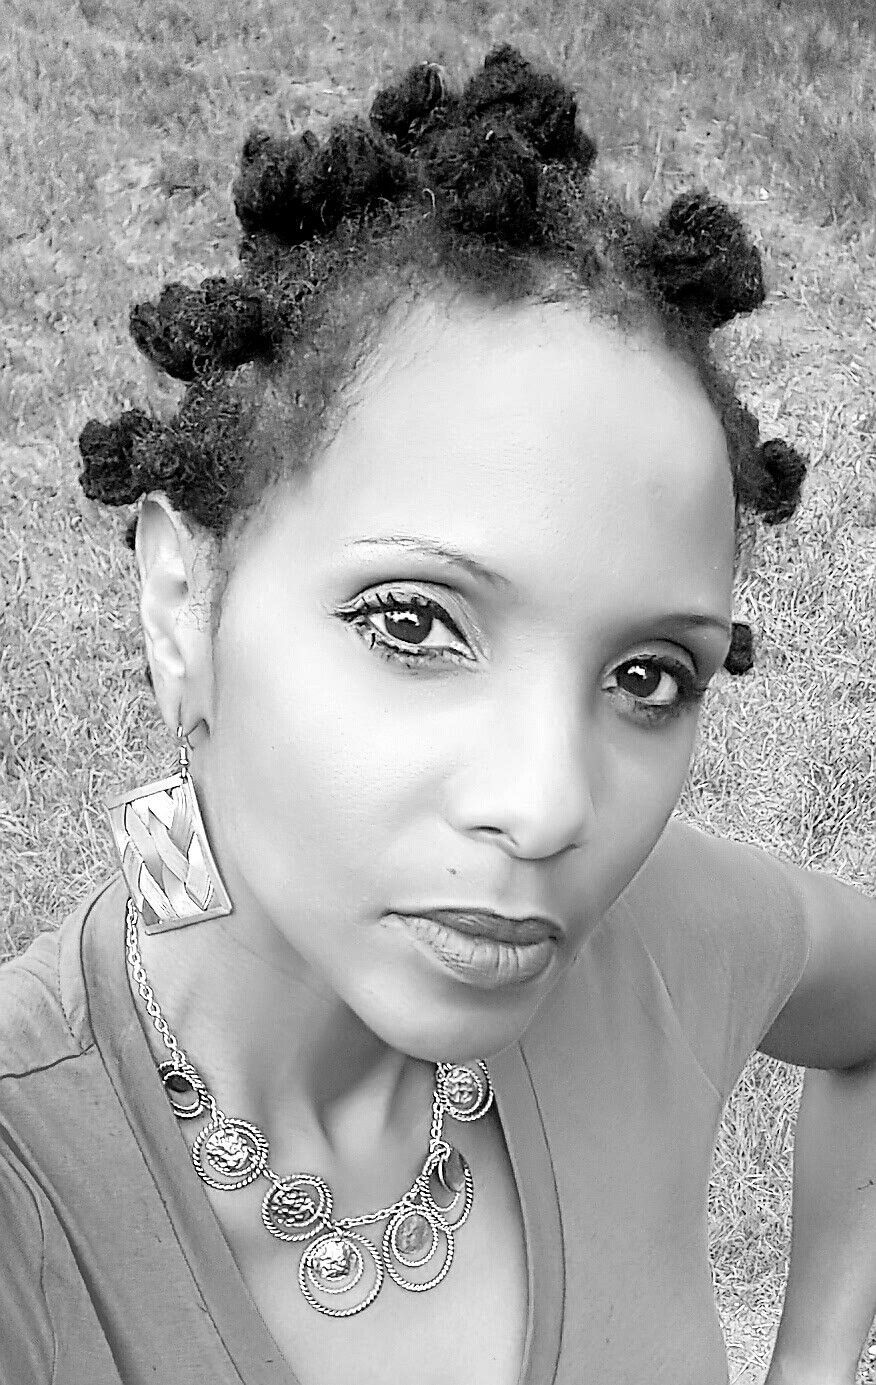 Embracing my gray and coily mane wearing a bantu knot hairstyle